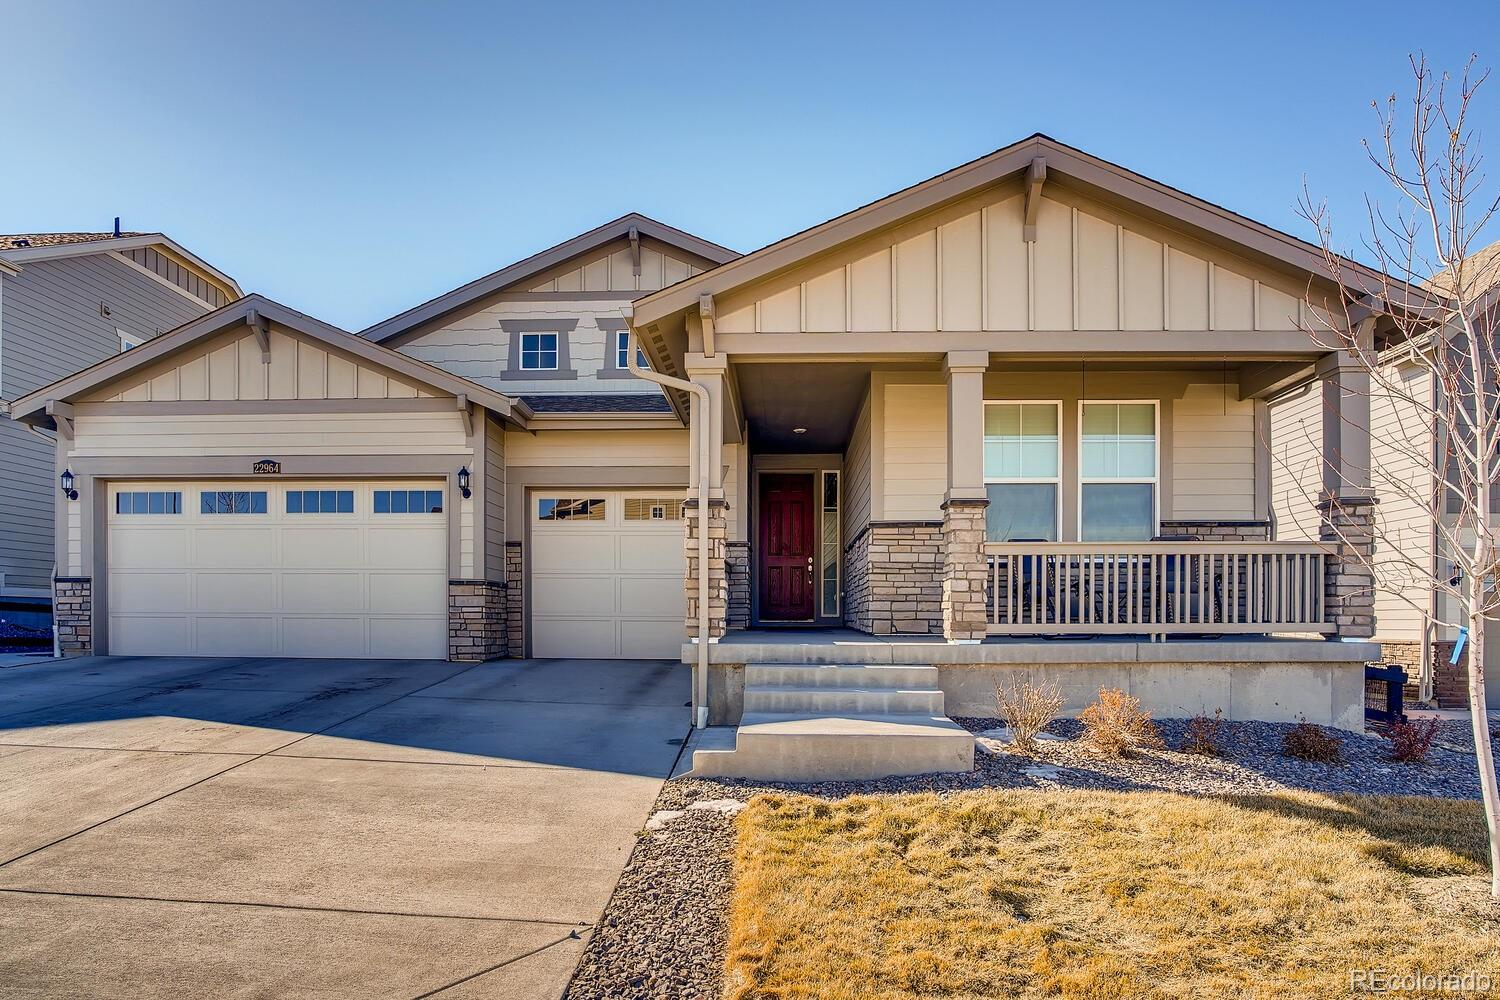 Bring your pickiest buyer. Why wait for new when this gorgeous home is ready NOW?! Fantastic views and backing to open space, this beautiful custom Hudson ranch plan has 3 beds (2 main / 1 bsmt), 5 baths (3 main / 2 bsmt), great room, kitchen, full finished walkout basement,  3 car garage and more. Listing agent is the owner/occupant.  $100,000 in improvements and finishes, bathroom remodels, custom closets (Closets By Design) & additional upgrades plus $30,000 in landscaping. This home is fully customized. The finished basement features a conforming bedroom, ¾ bath, ½ bath, kitchenette, family room and exercise room – perfect for guests or teen wanting their own space.  This home lives large. Meticulously maintained – pride of ownership shines throughout.  You will not find another like this at this price point. This one is a must see. Amenity rich Inspiration provides the best of Colorado living with all the latest technology.  Energy efficiency and state of the art technology/connectivity seamlessly blended with luxury - comfortable elegance.  You will not be disappointed. Close to dining, shopping, entertainment and other amenities. Easy commute to DIA, E-470, Downtown Denver, Golden, Boulder and beyond. Perfect and move in ready -  Welcome Home! This home is NOT in the 55+ section of Inspiration. PLEASE CONTACT LISTING AGENT/SELLER FOR SHOWING APPOINTMENTS.